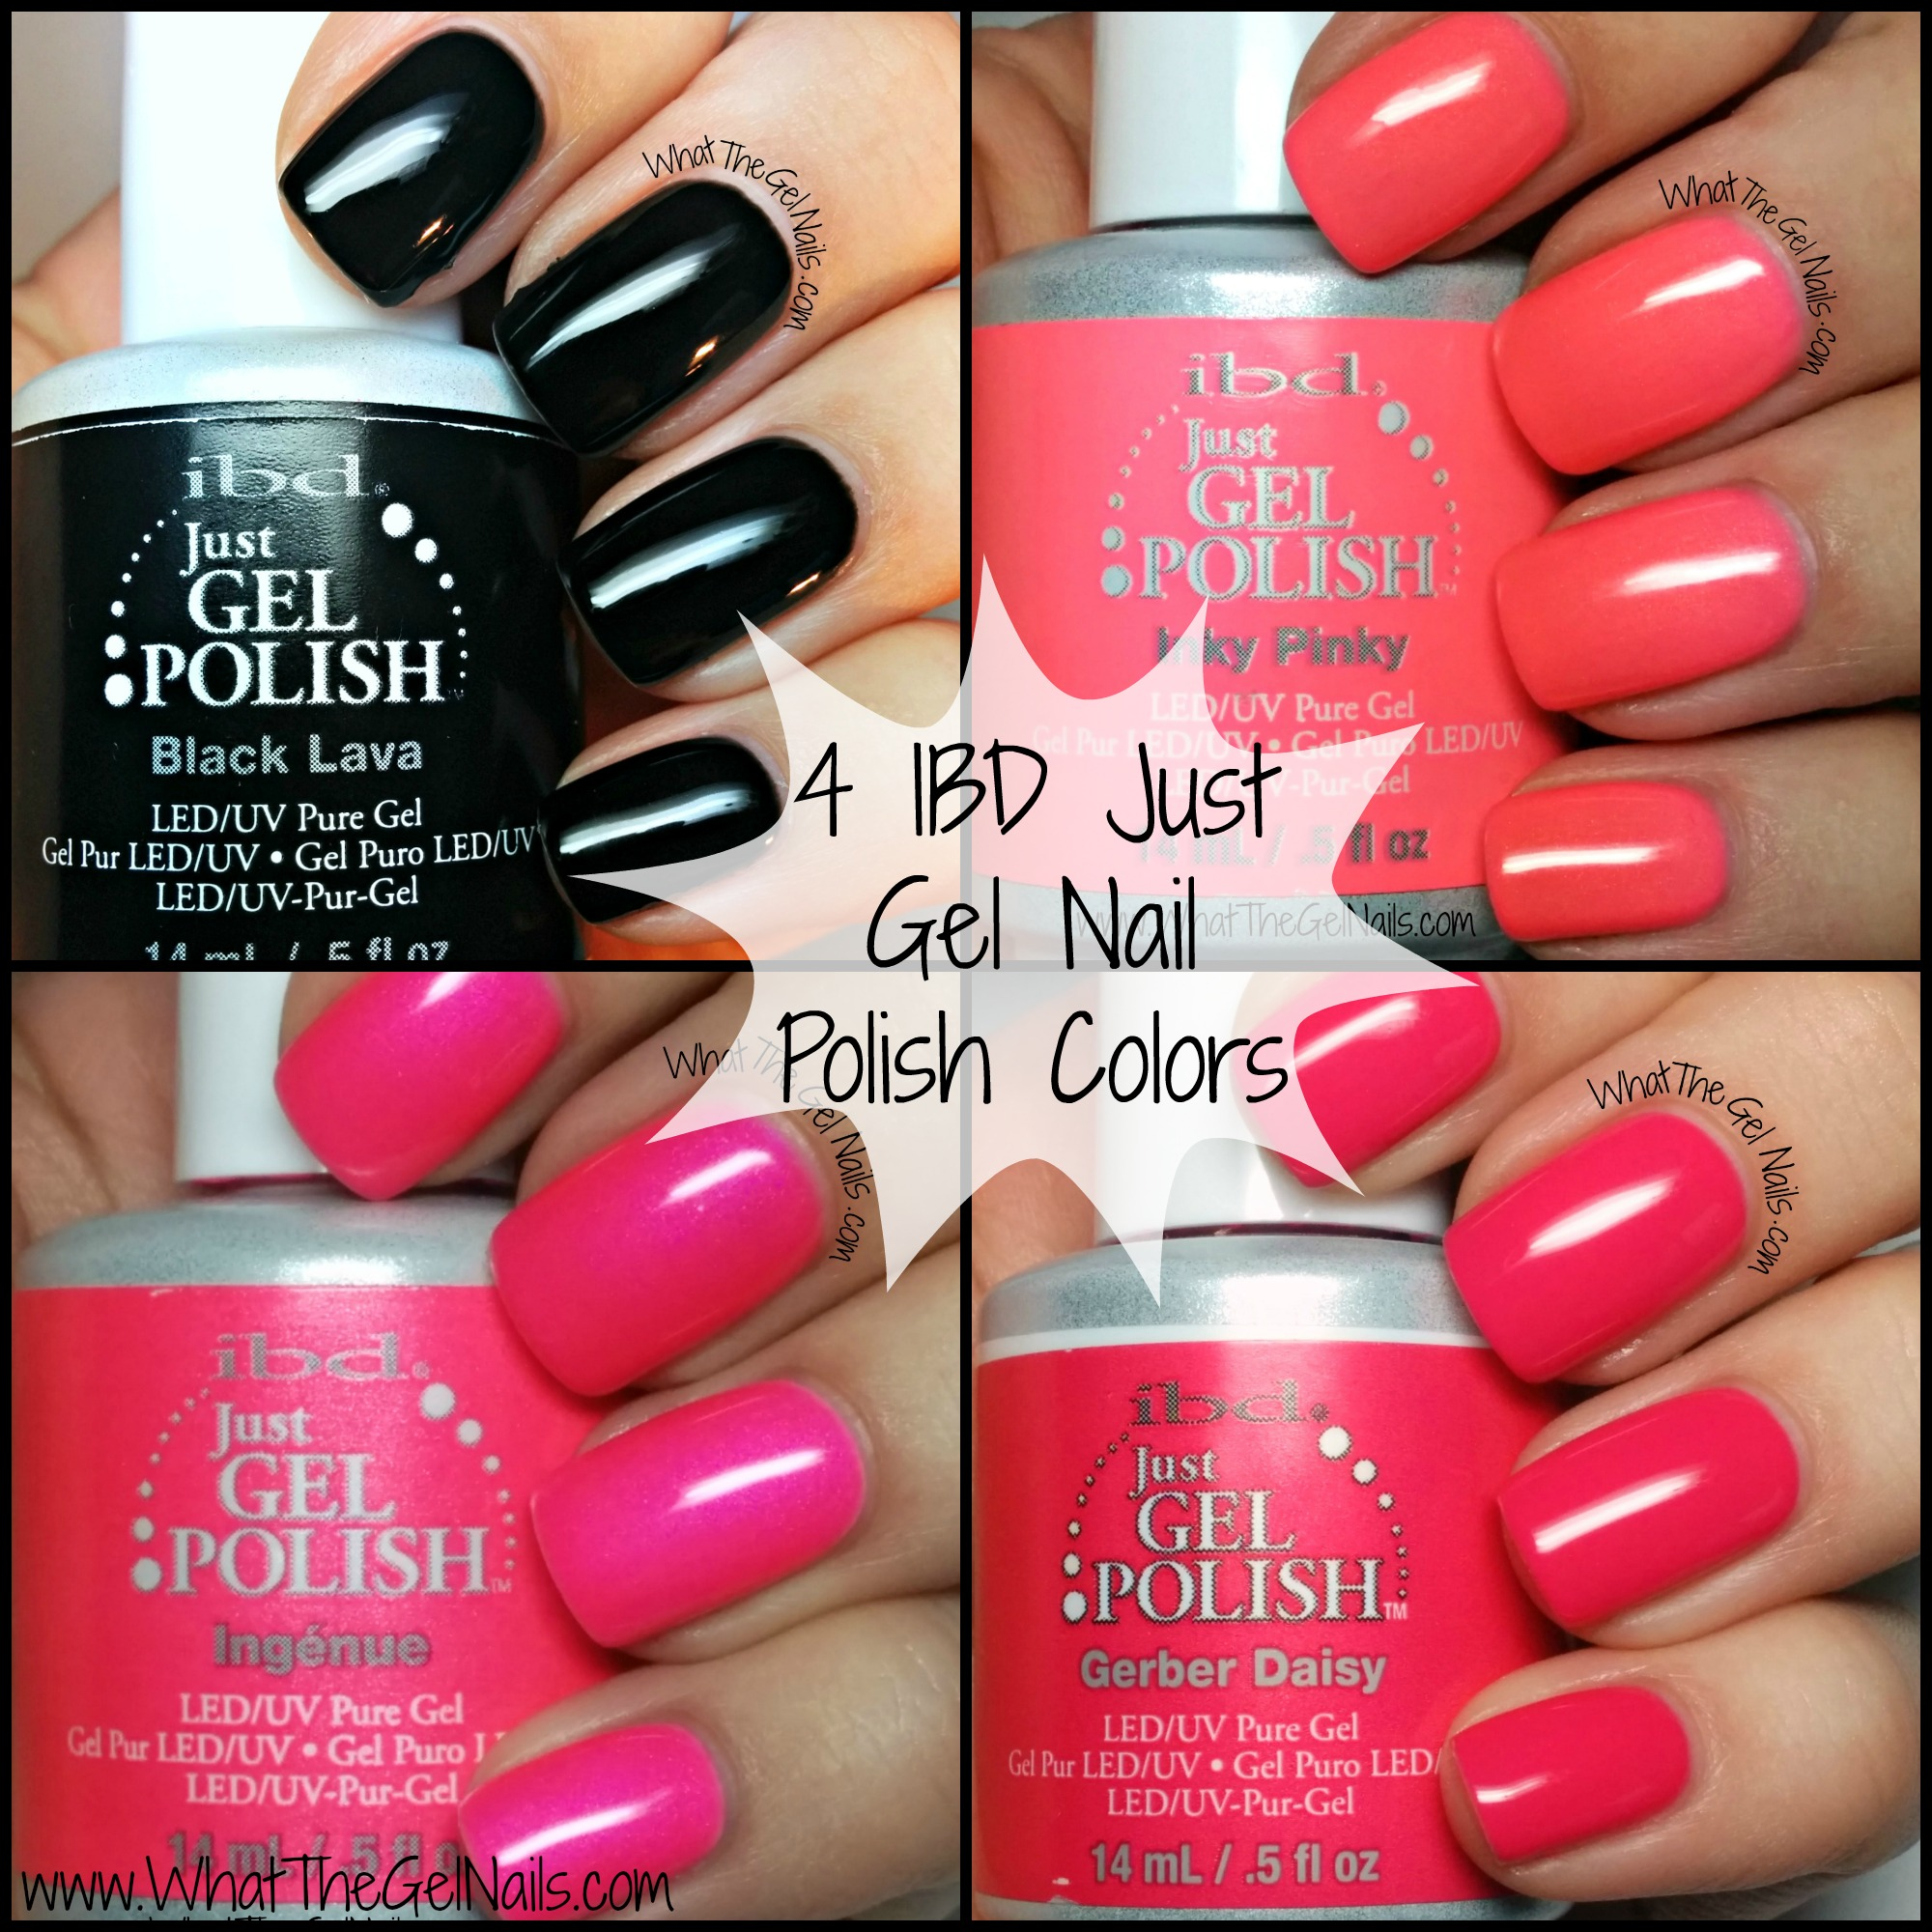 Gel Nail Polish Colors: 4 IBD Just Gel Nail Polish Colors